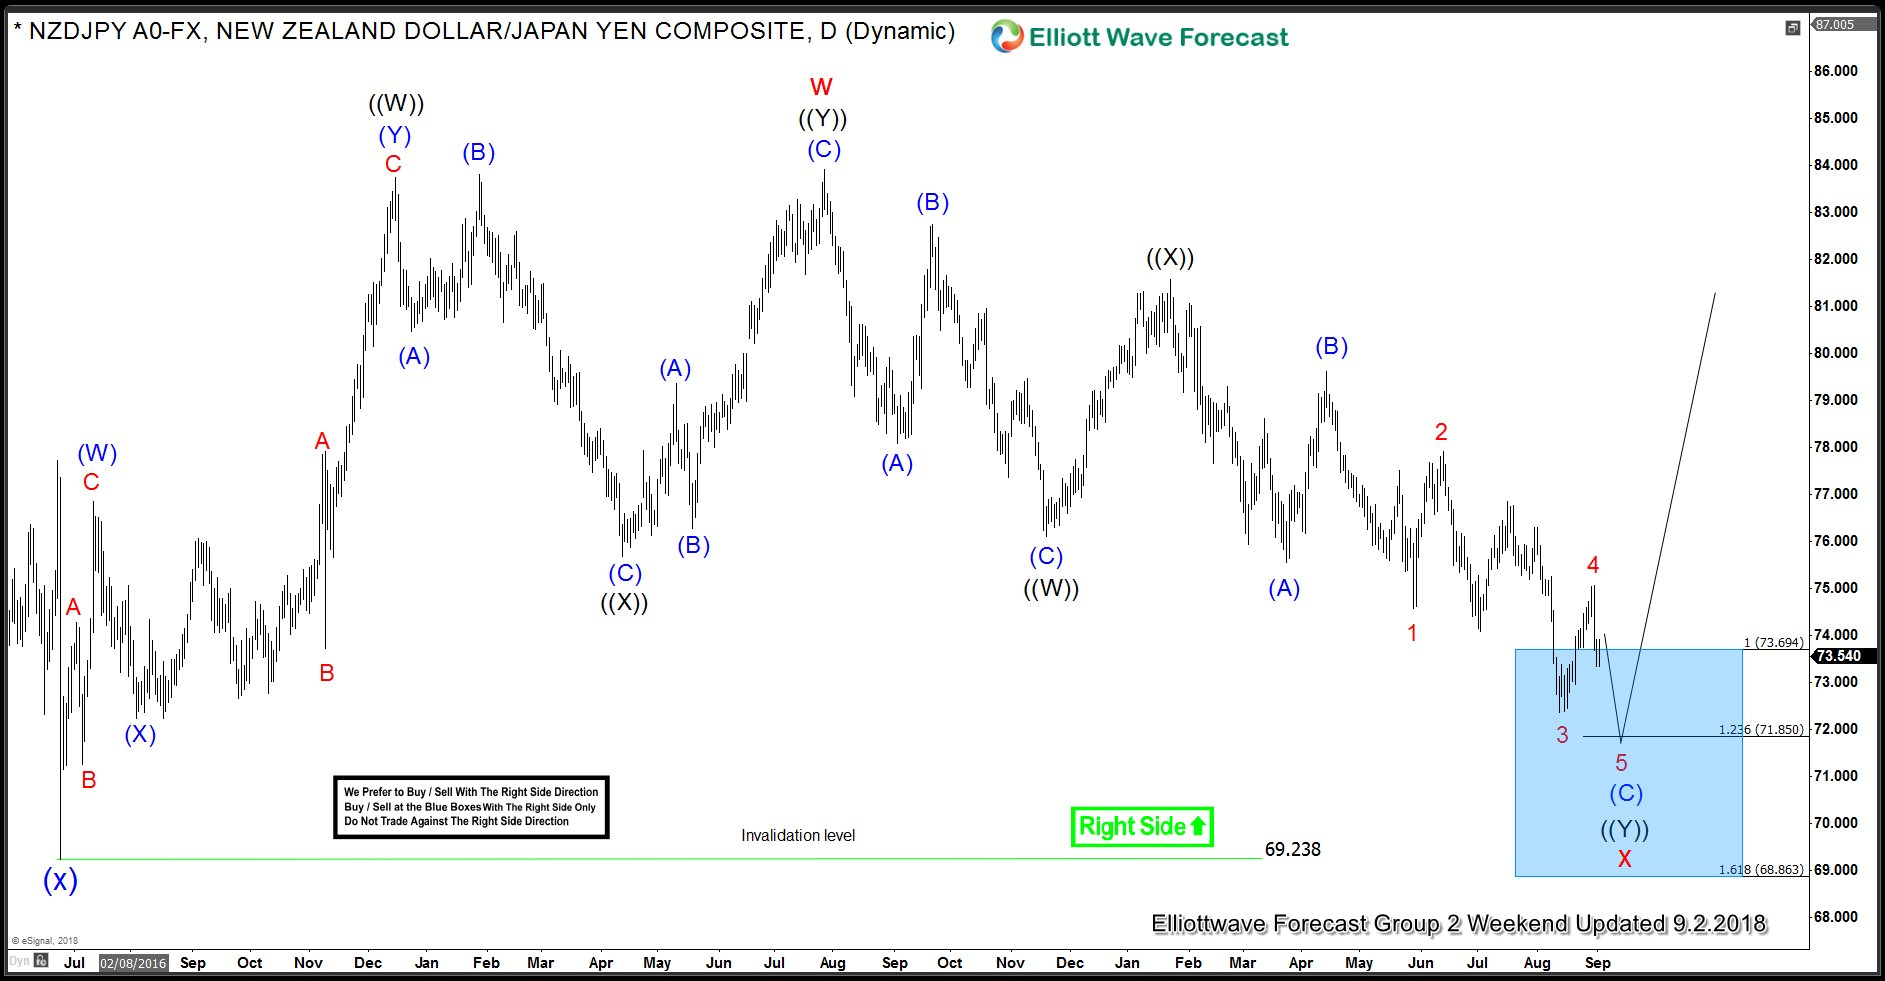 NZDJPY 2 September Daily Elliott Wave Analysis